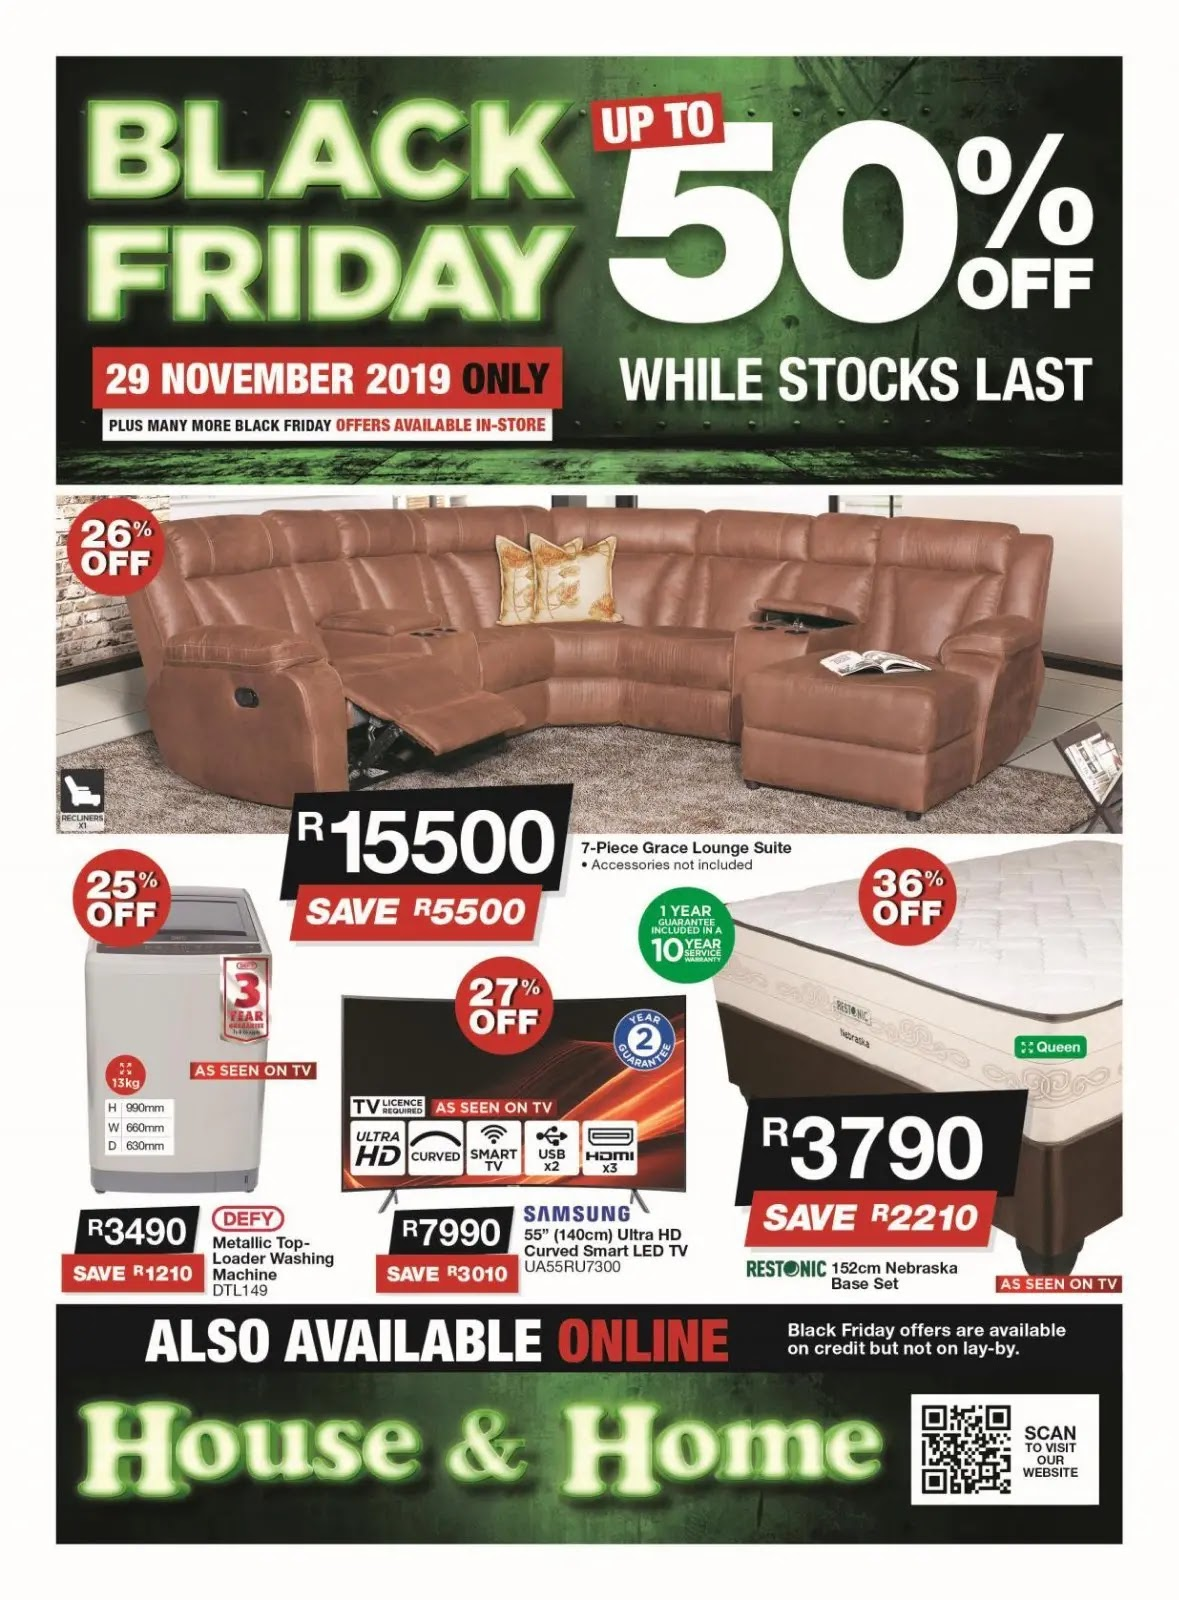 House & Home Black Friday Deals Page 1